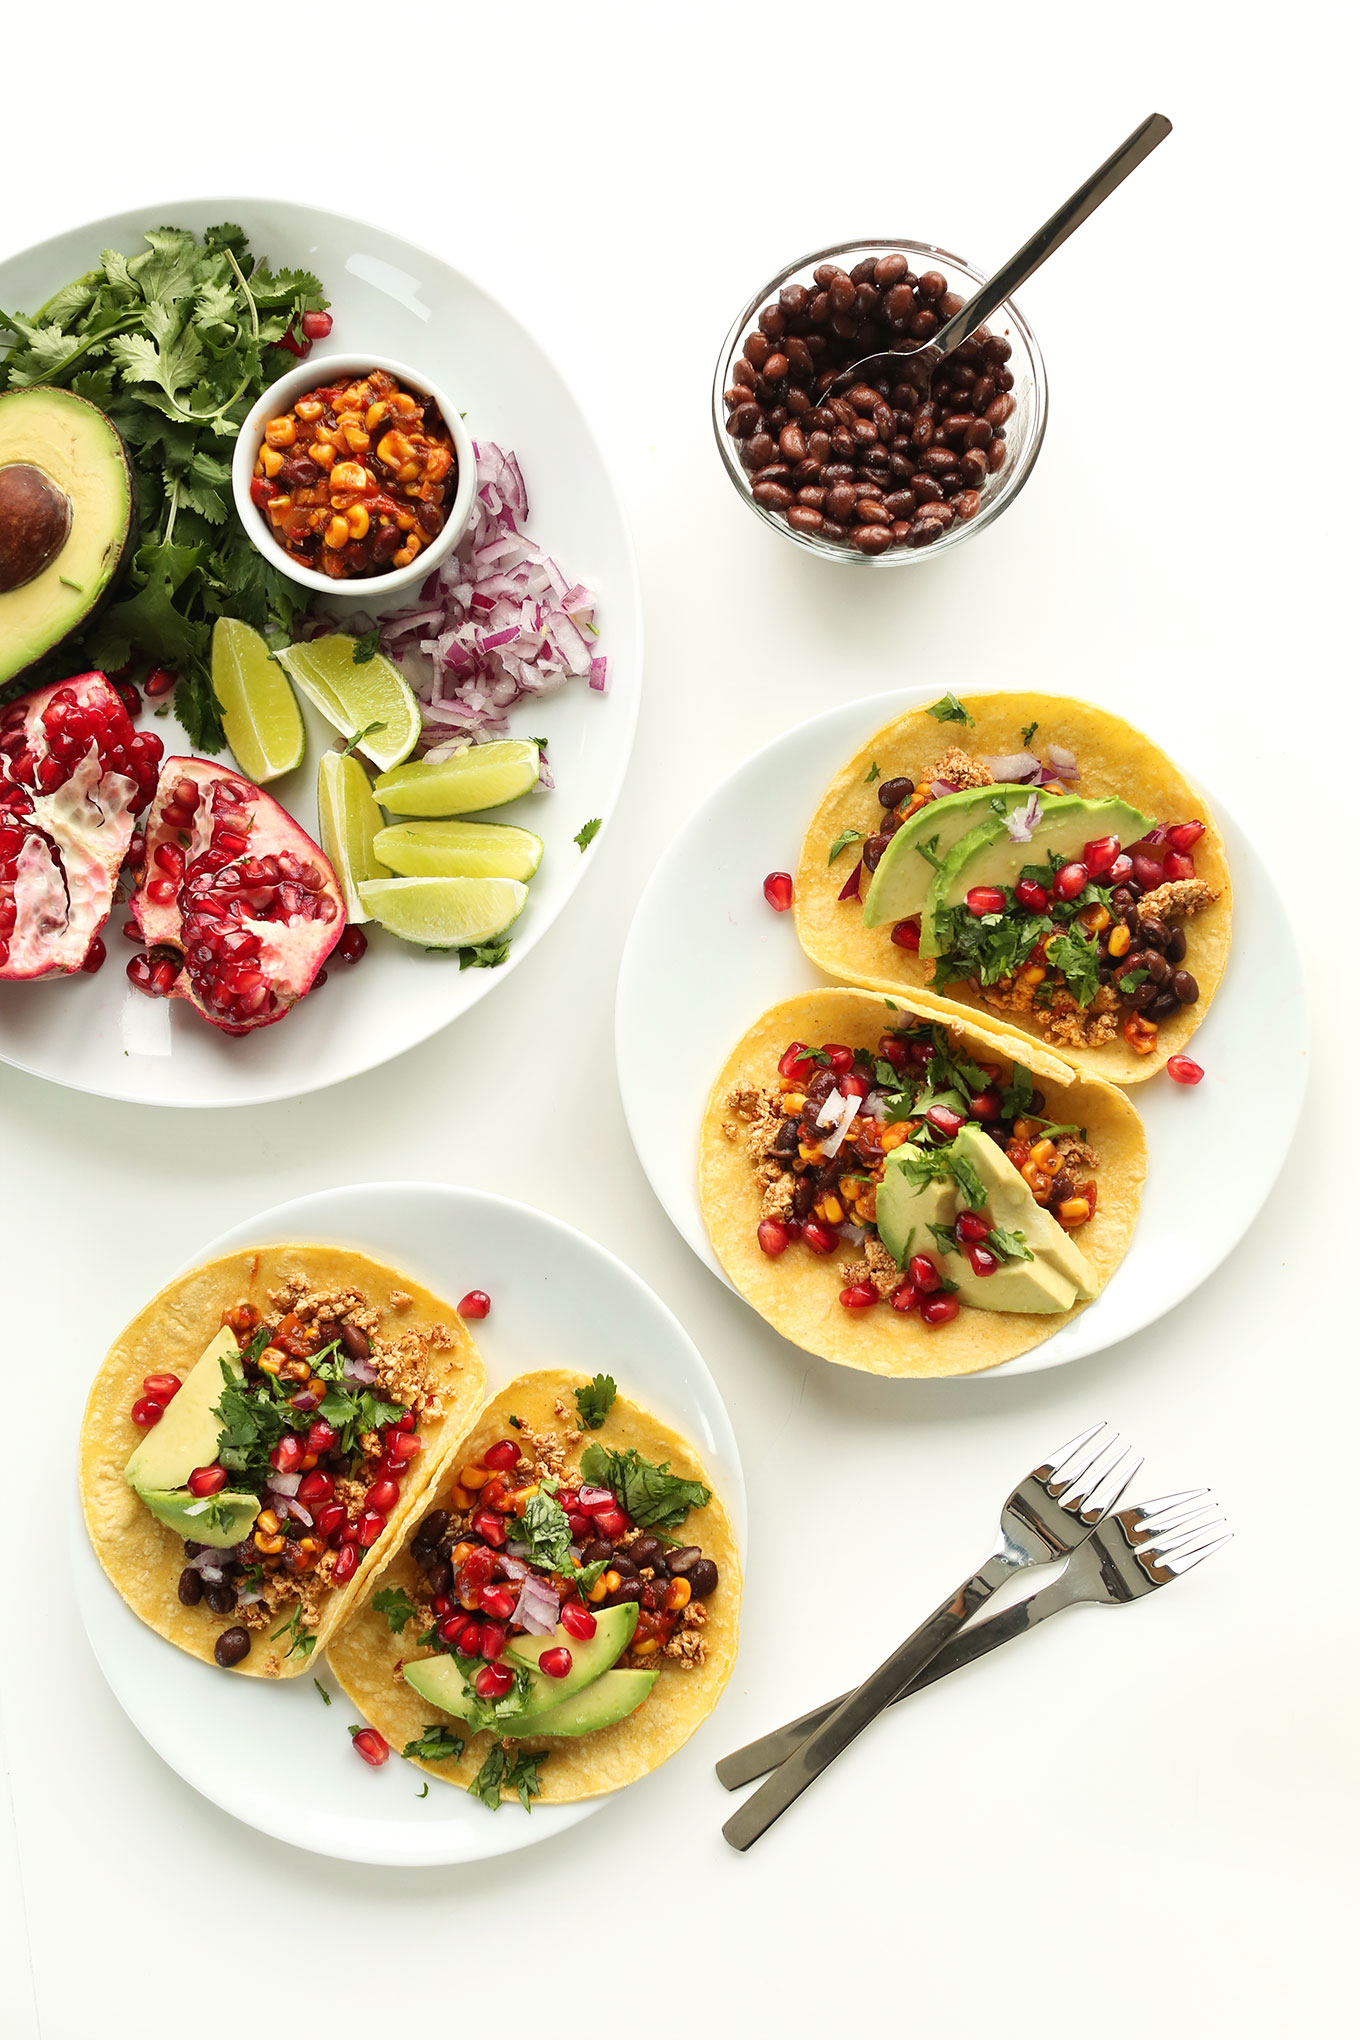 Plates of healthy Breakfast Tacos for a filling vegan meal